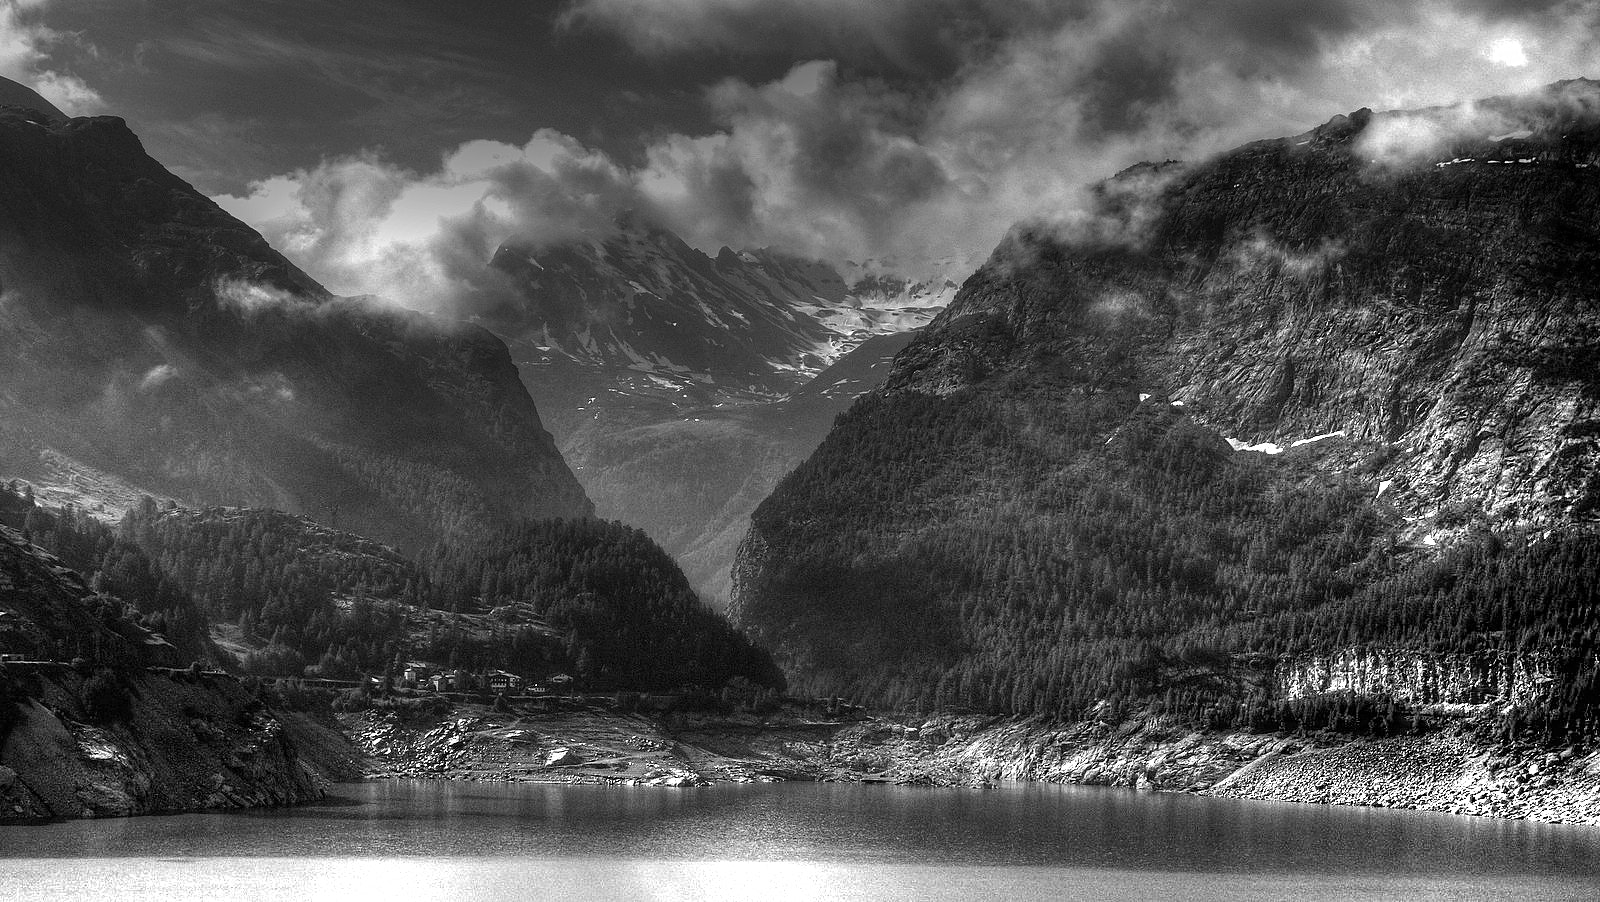 Grey Scale Photo of Body of Water Near Mountain Ranges, Black-and-white, River, Valley, Travel, HQ Photo